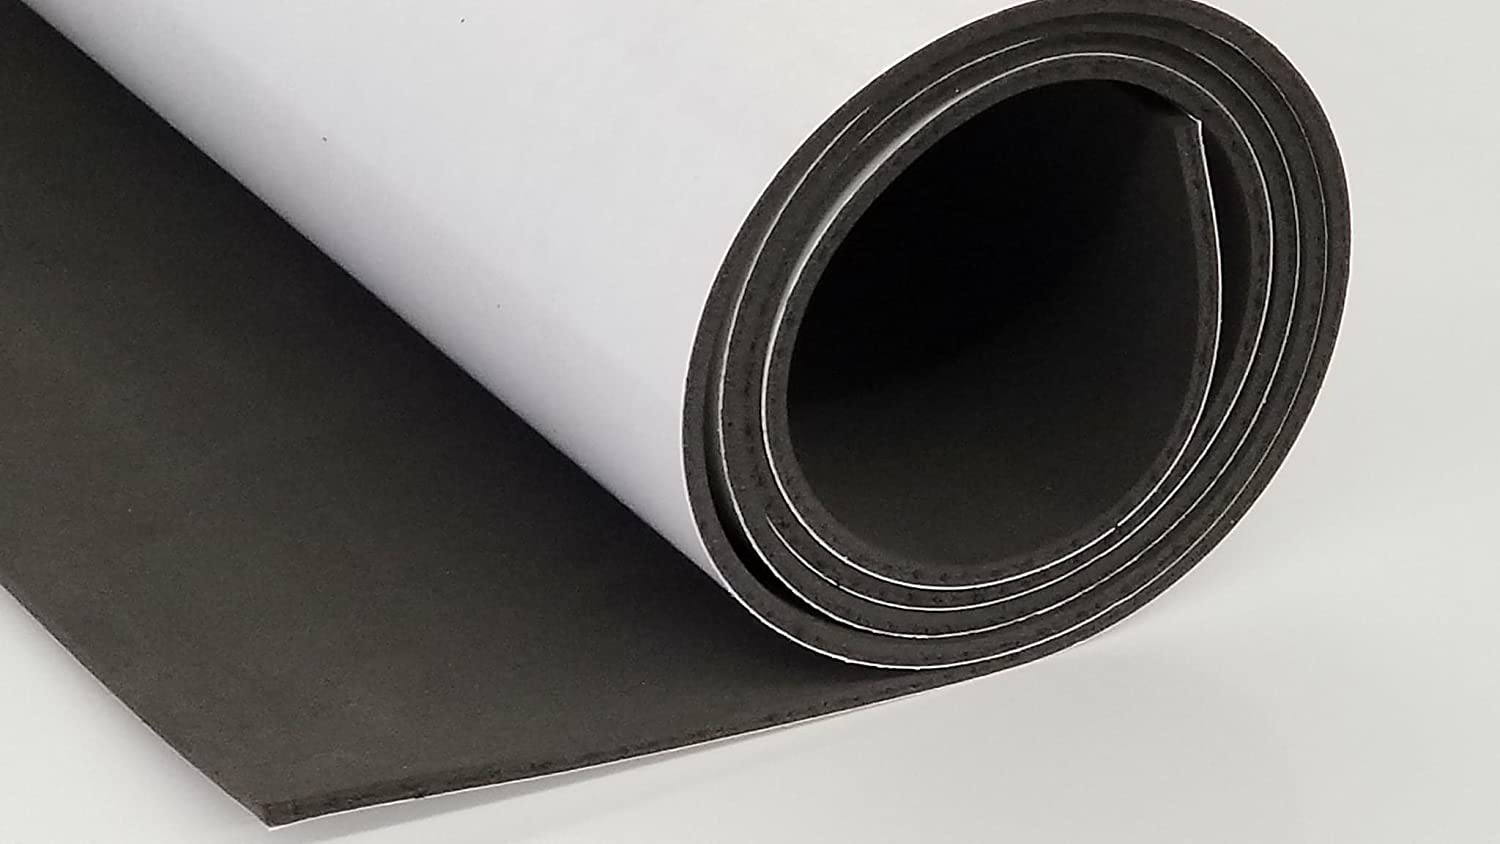 Sponge Neoprene Foam Rubber Sheets and Strips with ADHESIVE BACKING Soft/Medium Hardness- Cut to multiple dimensions and lengths - DIY, Gaskets, Cosplay, Costume, Crafts Rubber Sheet Warehouse